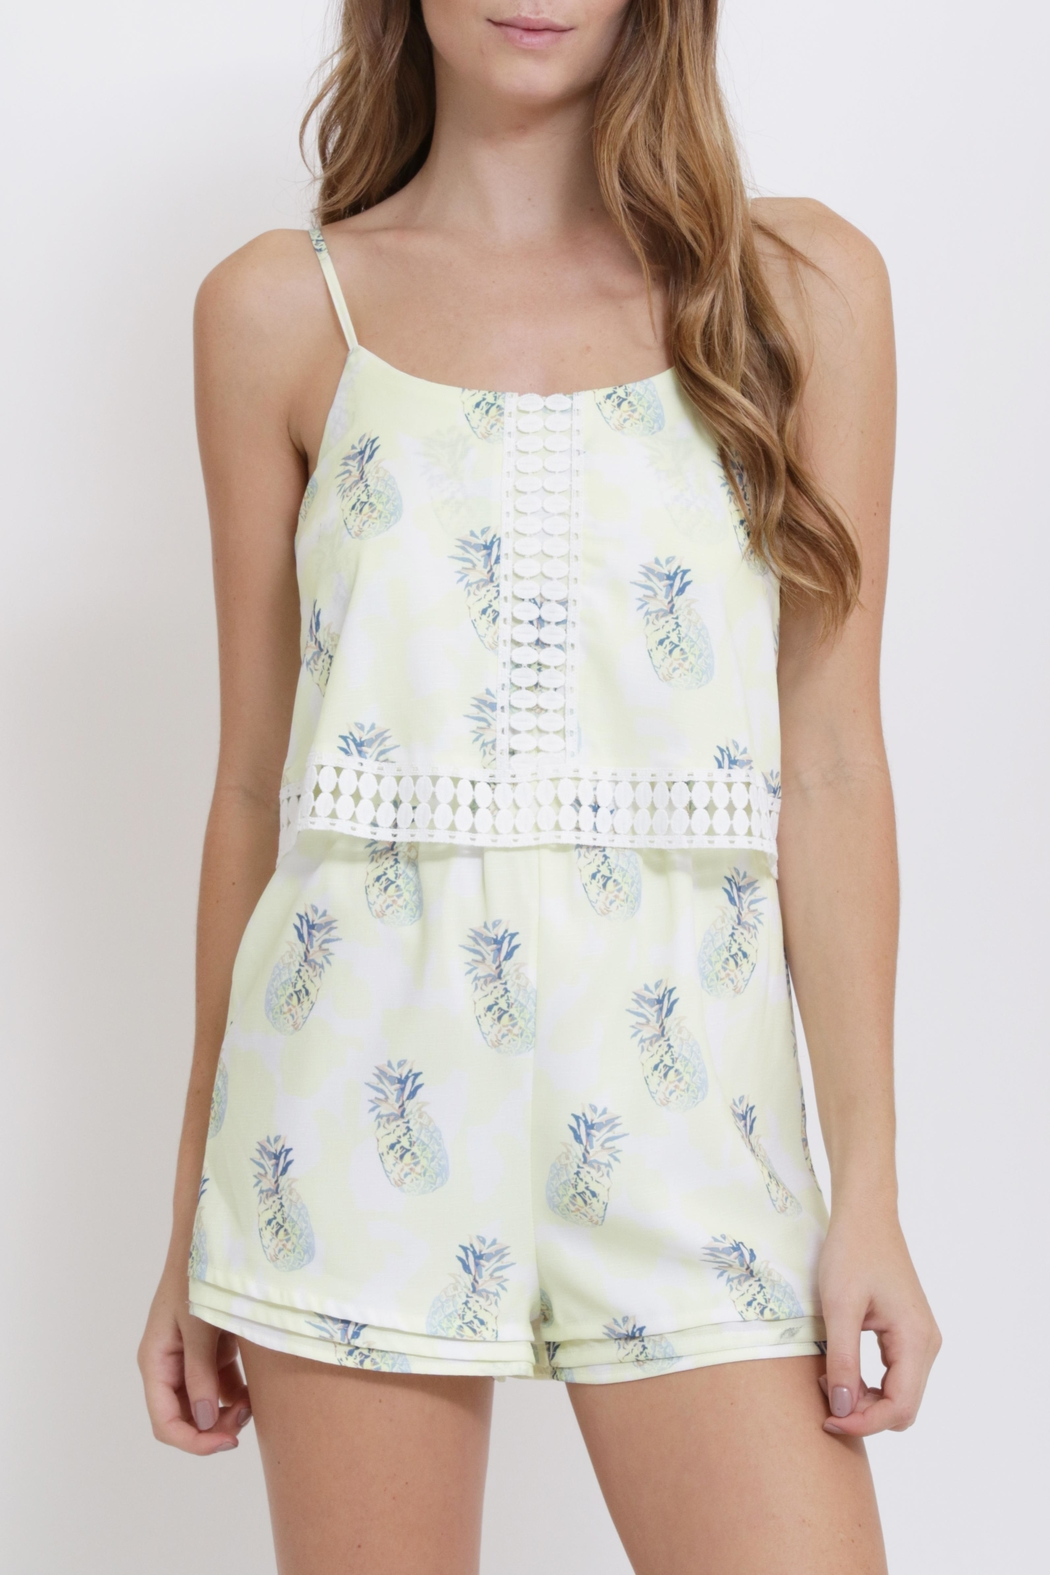 aedf32a61 CALS Pineapple Print Romper from California by YUNI — Shoptiques